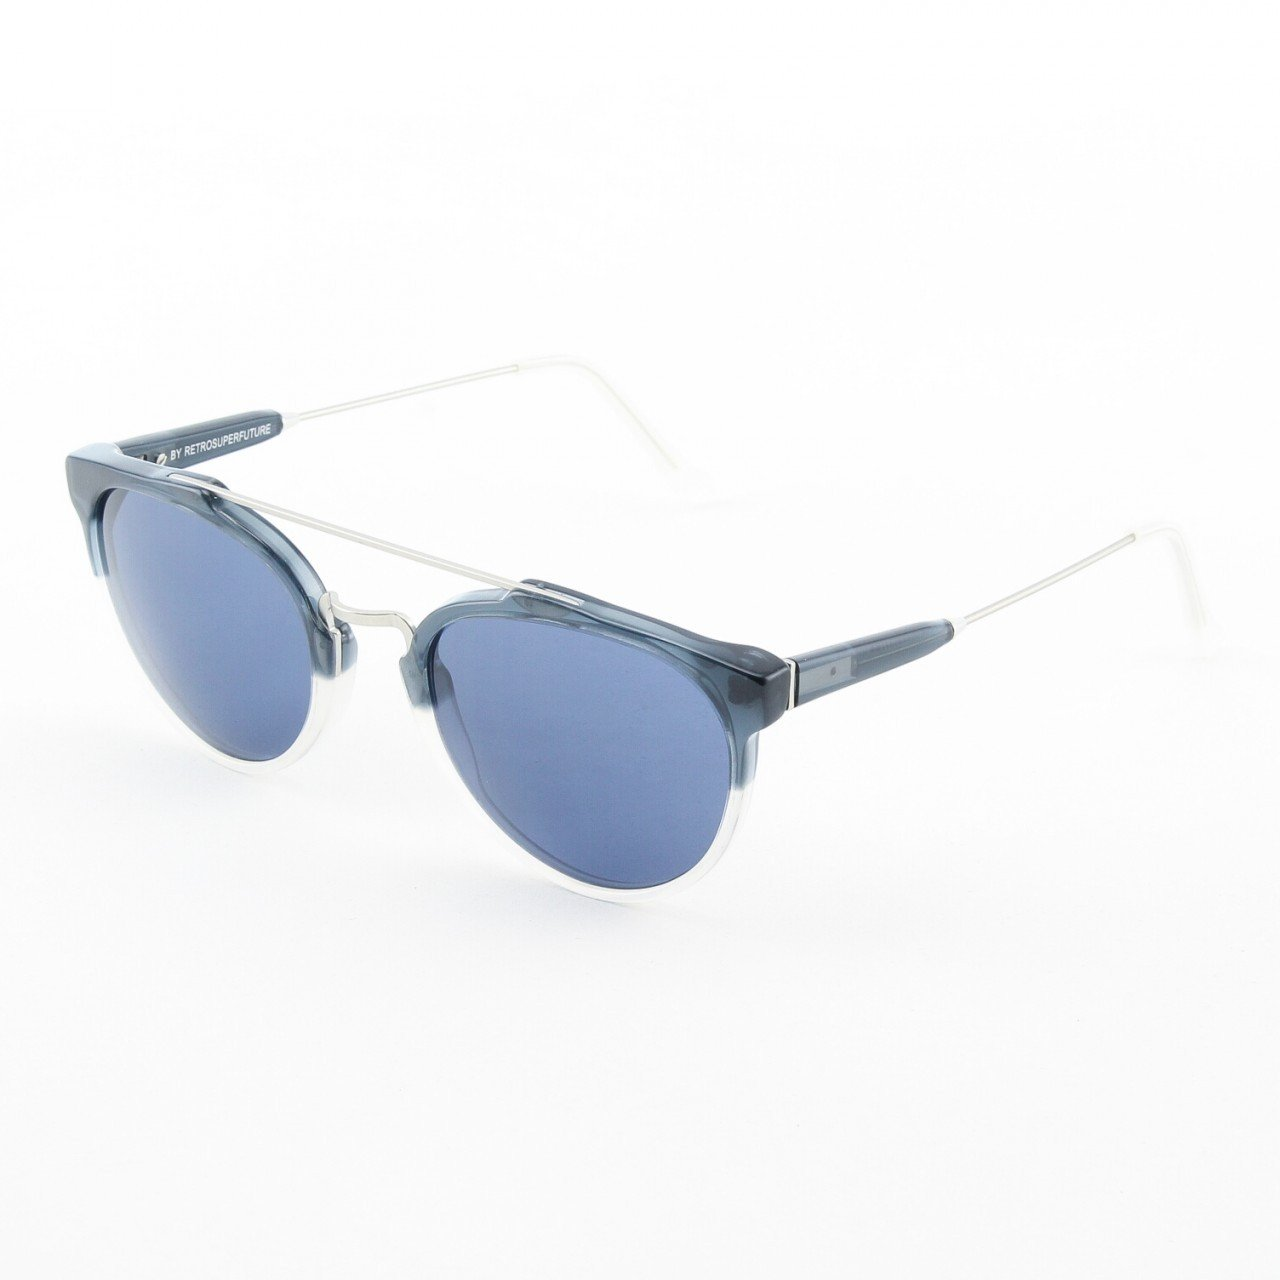 Super Giaguaro 570/3A Sunglasses Navy Beige with Blue Zeiss Lenses by RETROSUPERFUTURE